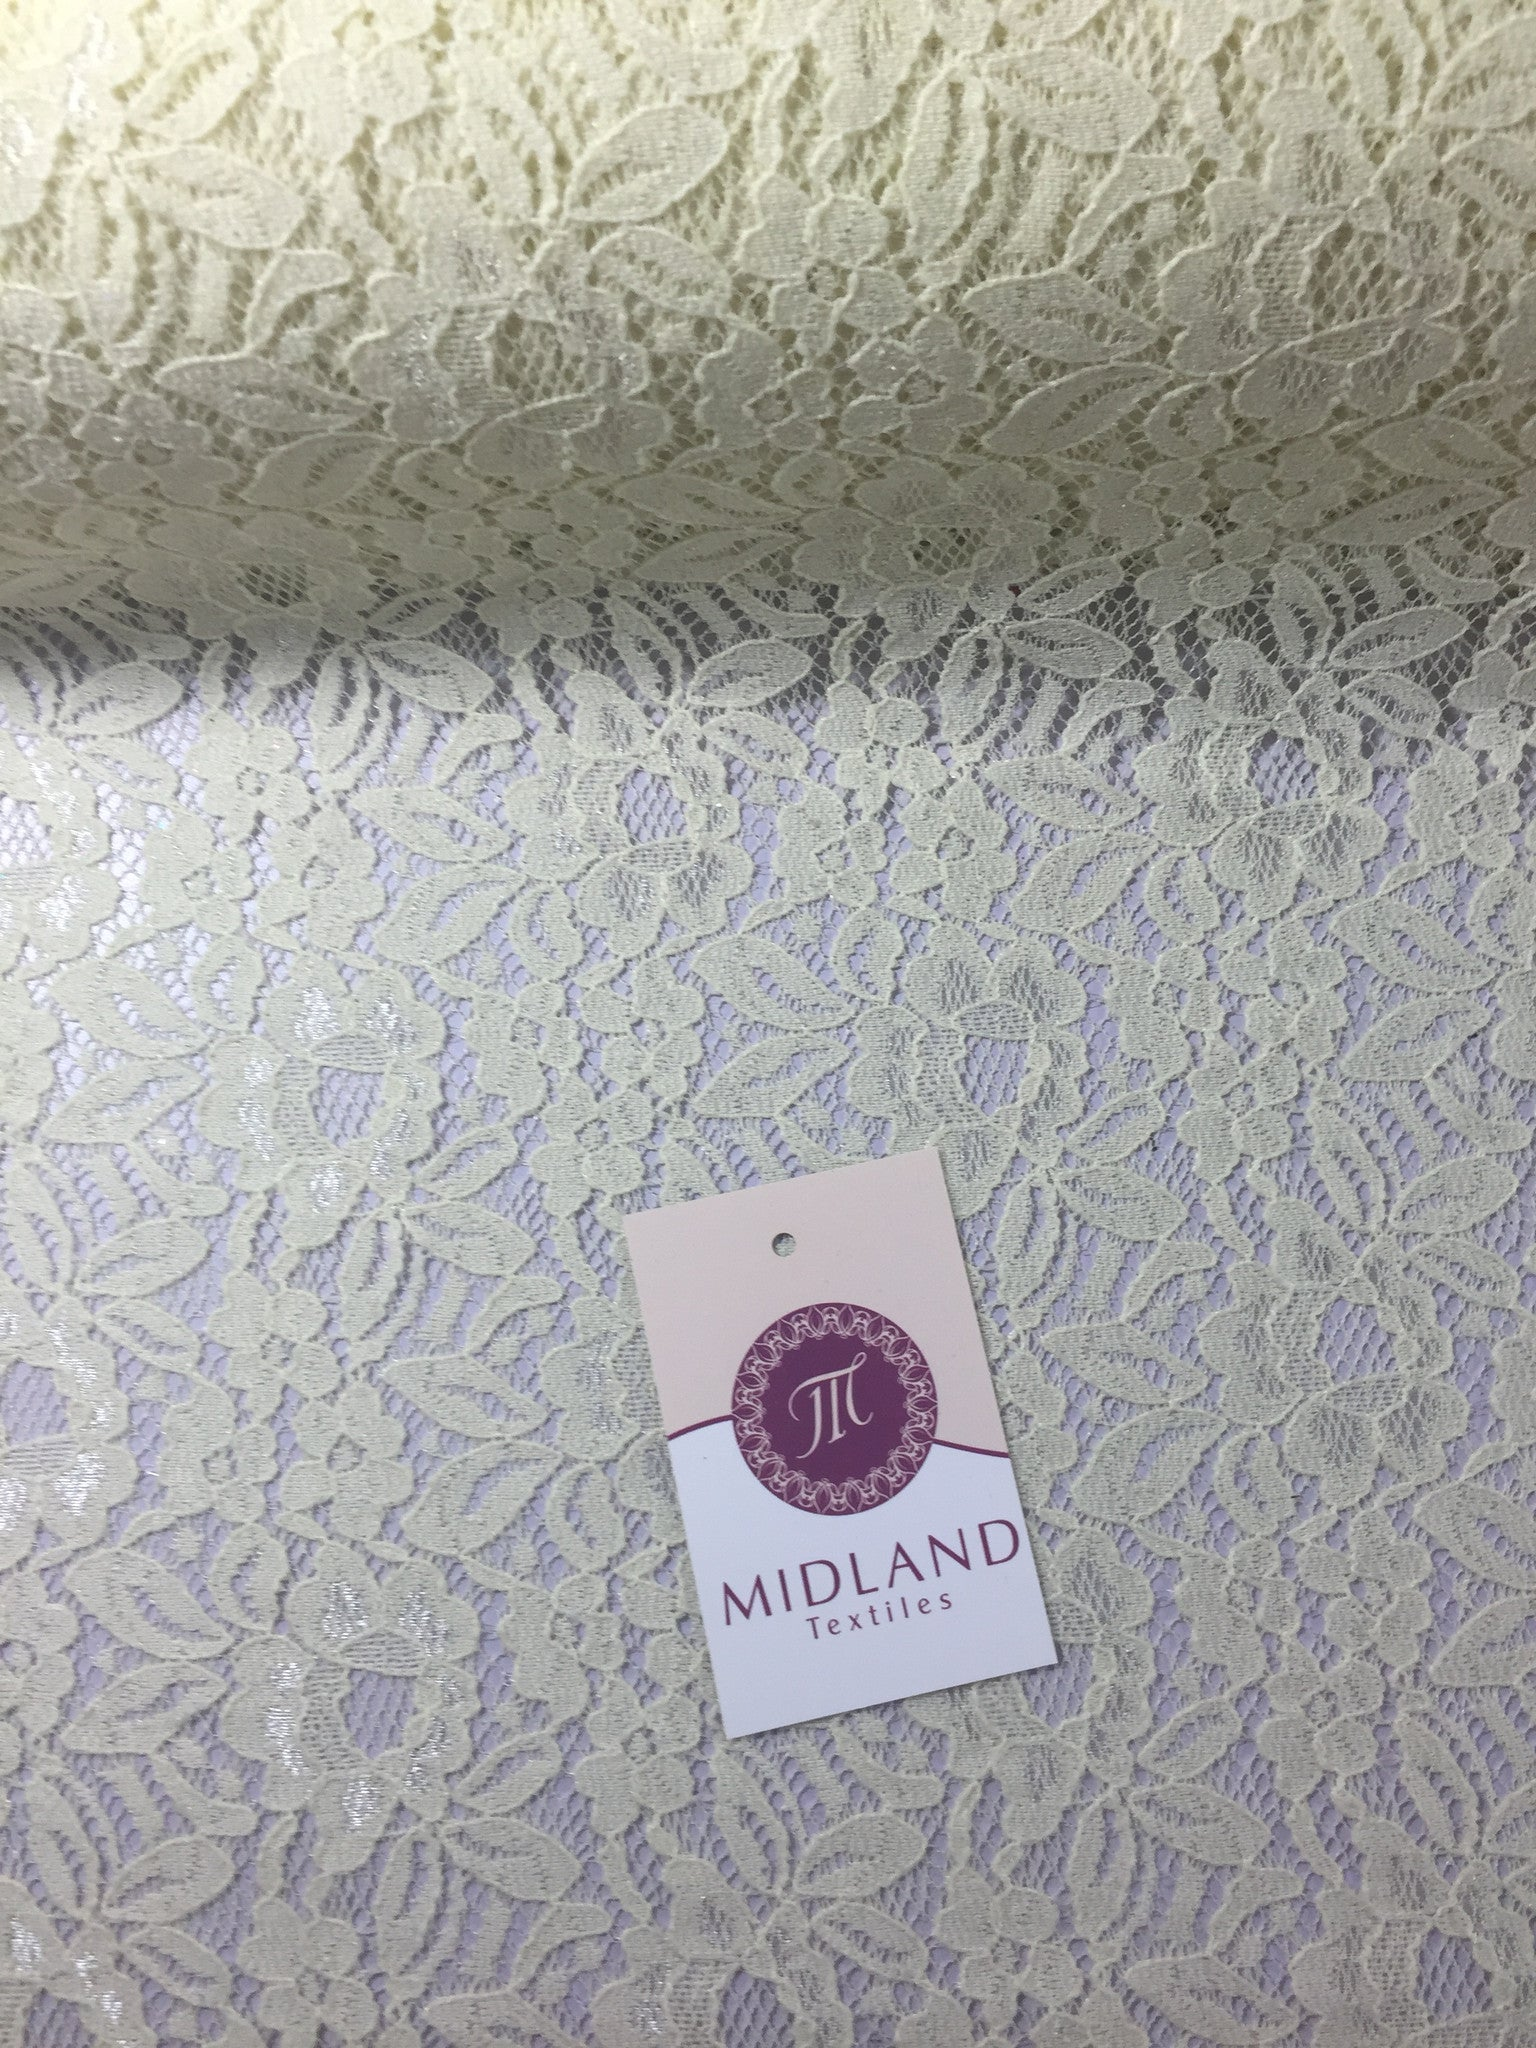 "Floral Soft Lace Semi Transparent 4 way stretch Fabric 55"" wide M186-14 Mtex - Midland Textiles & Fabric"